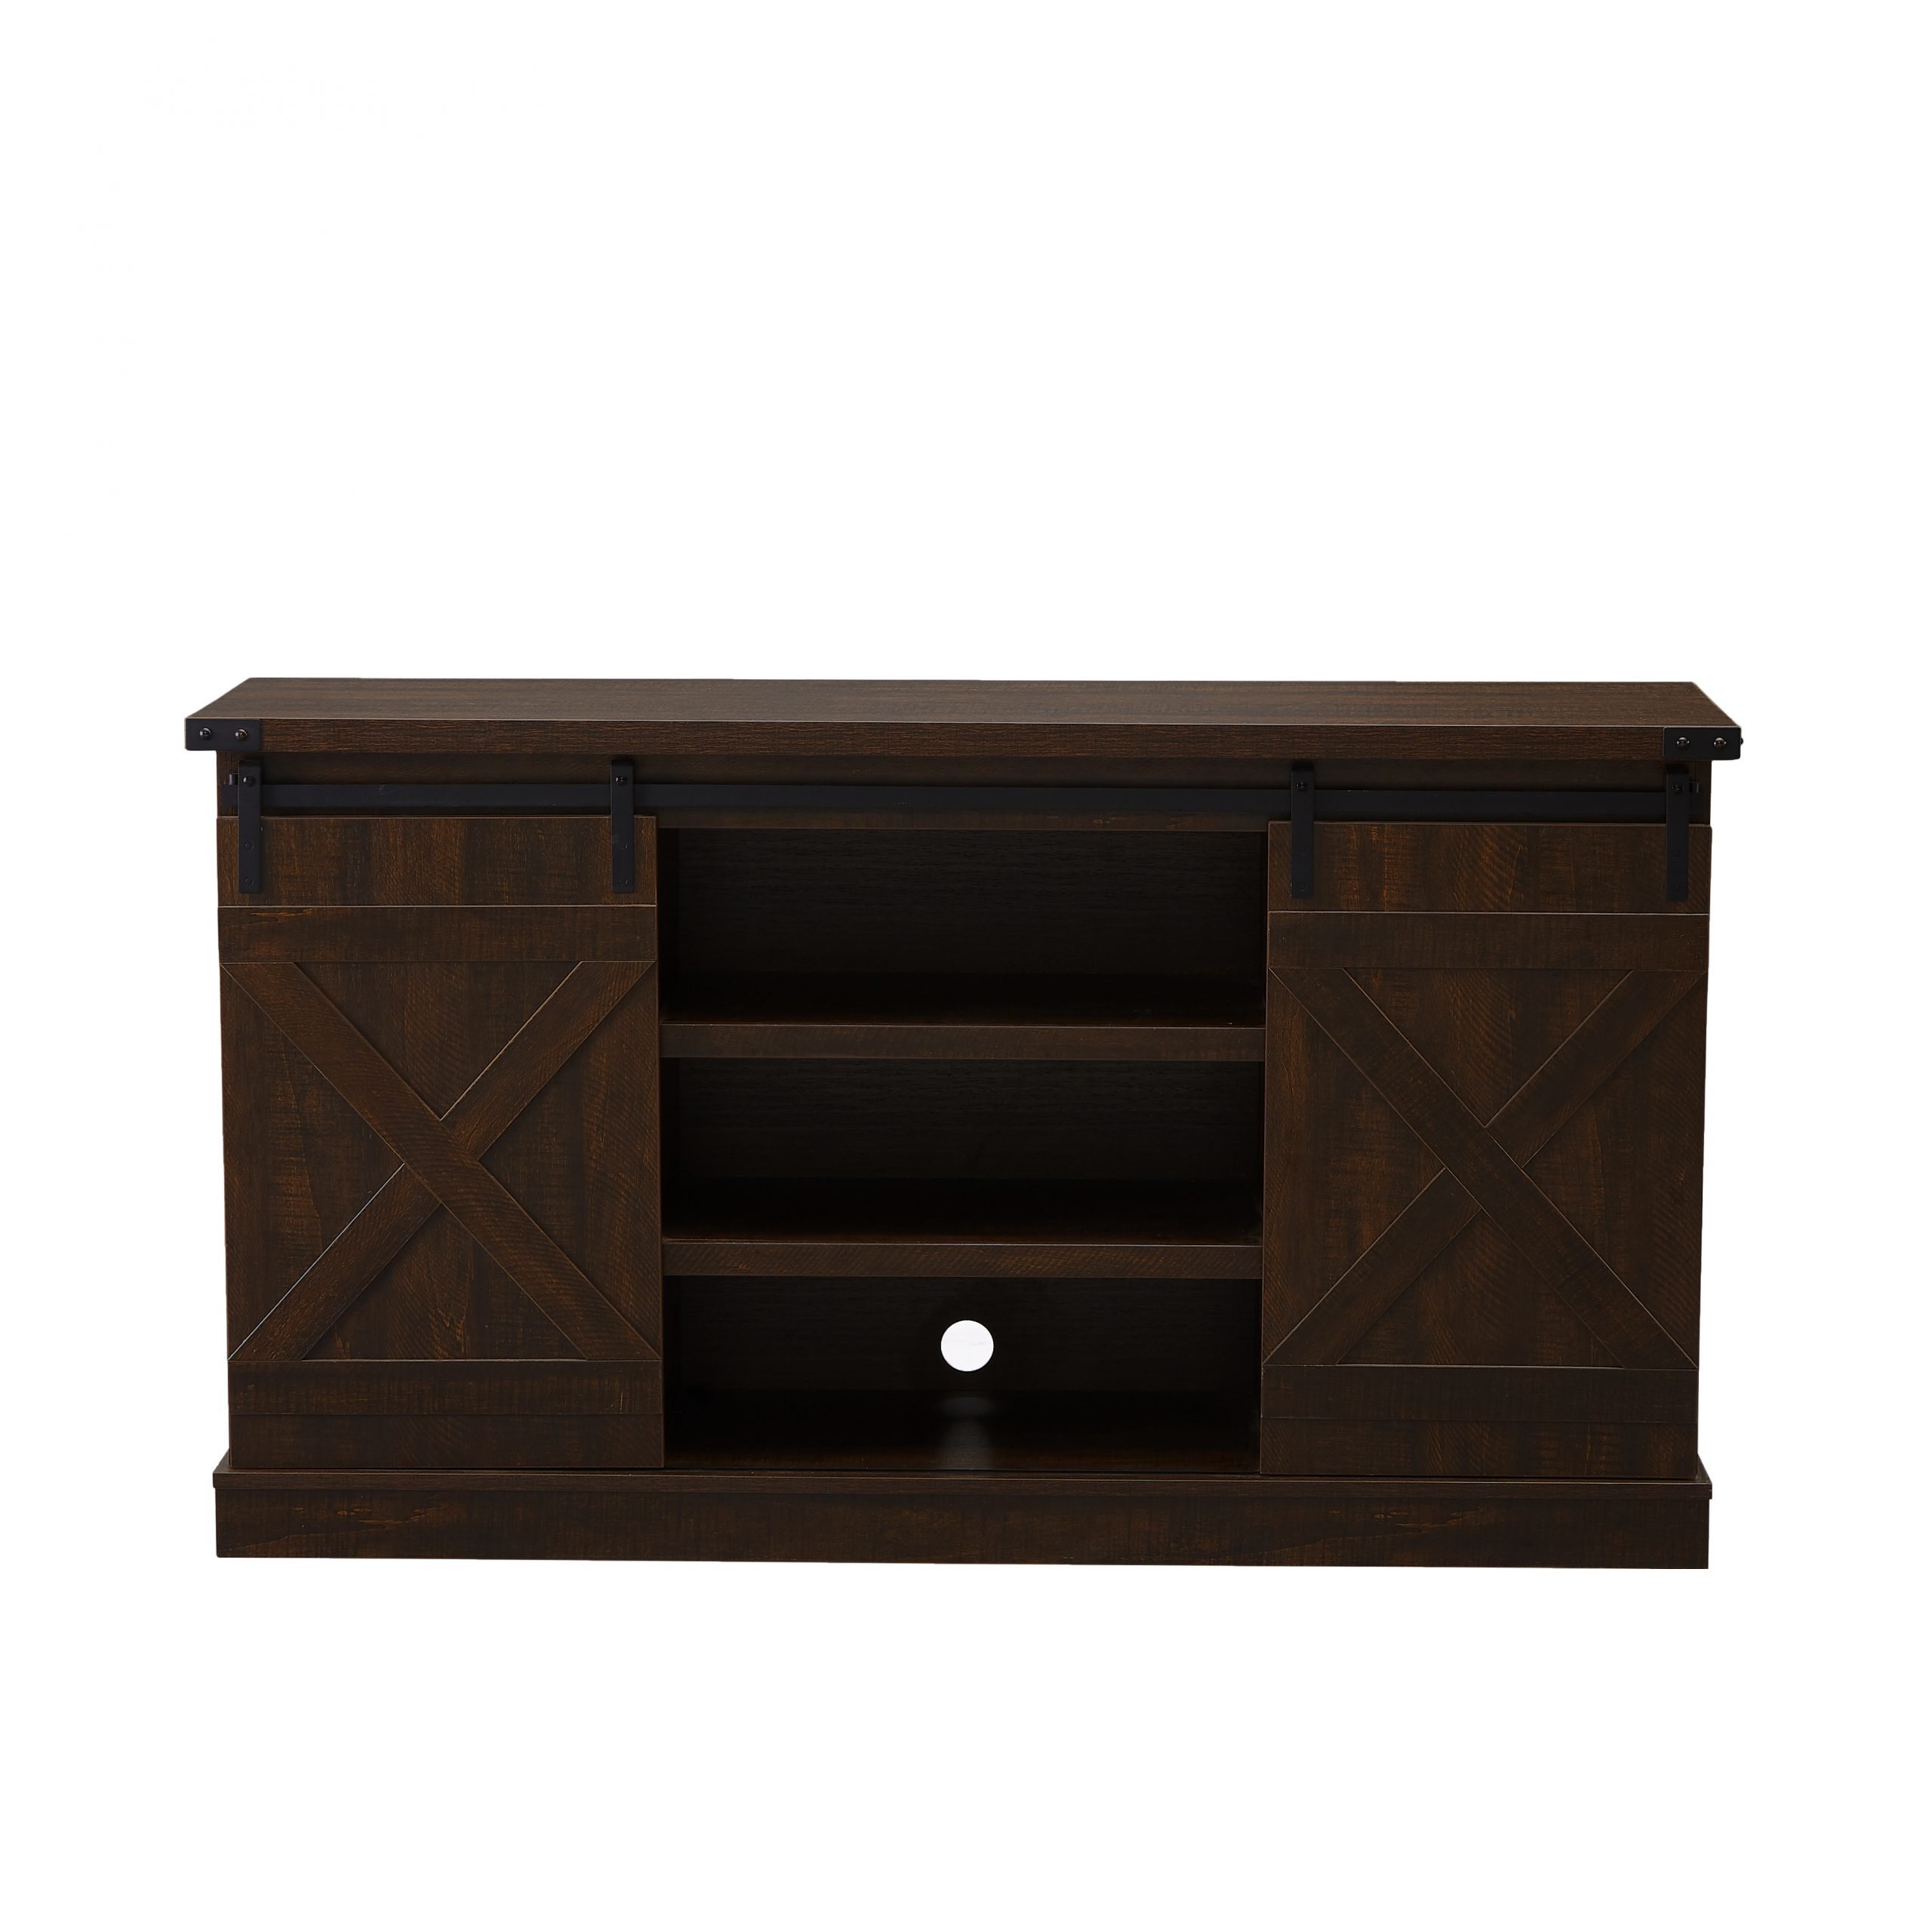 Farmhouse 54'' Tv Stands With Sliding Barn Door, Segmart Intended For Tv Stands With Cable Management (View 6 of 20)